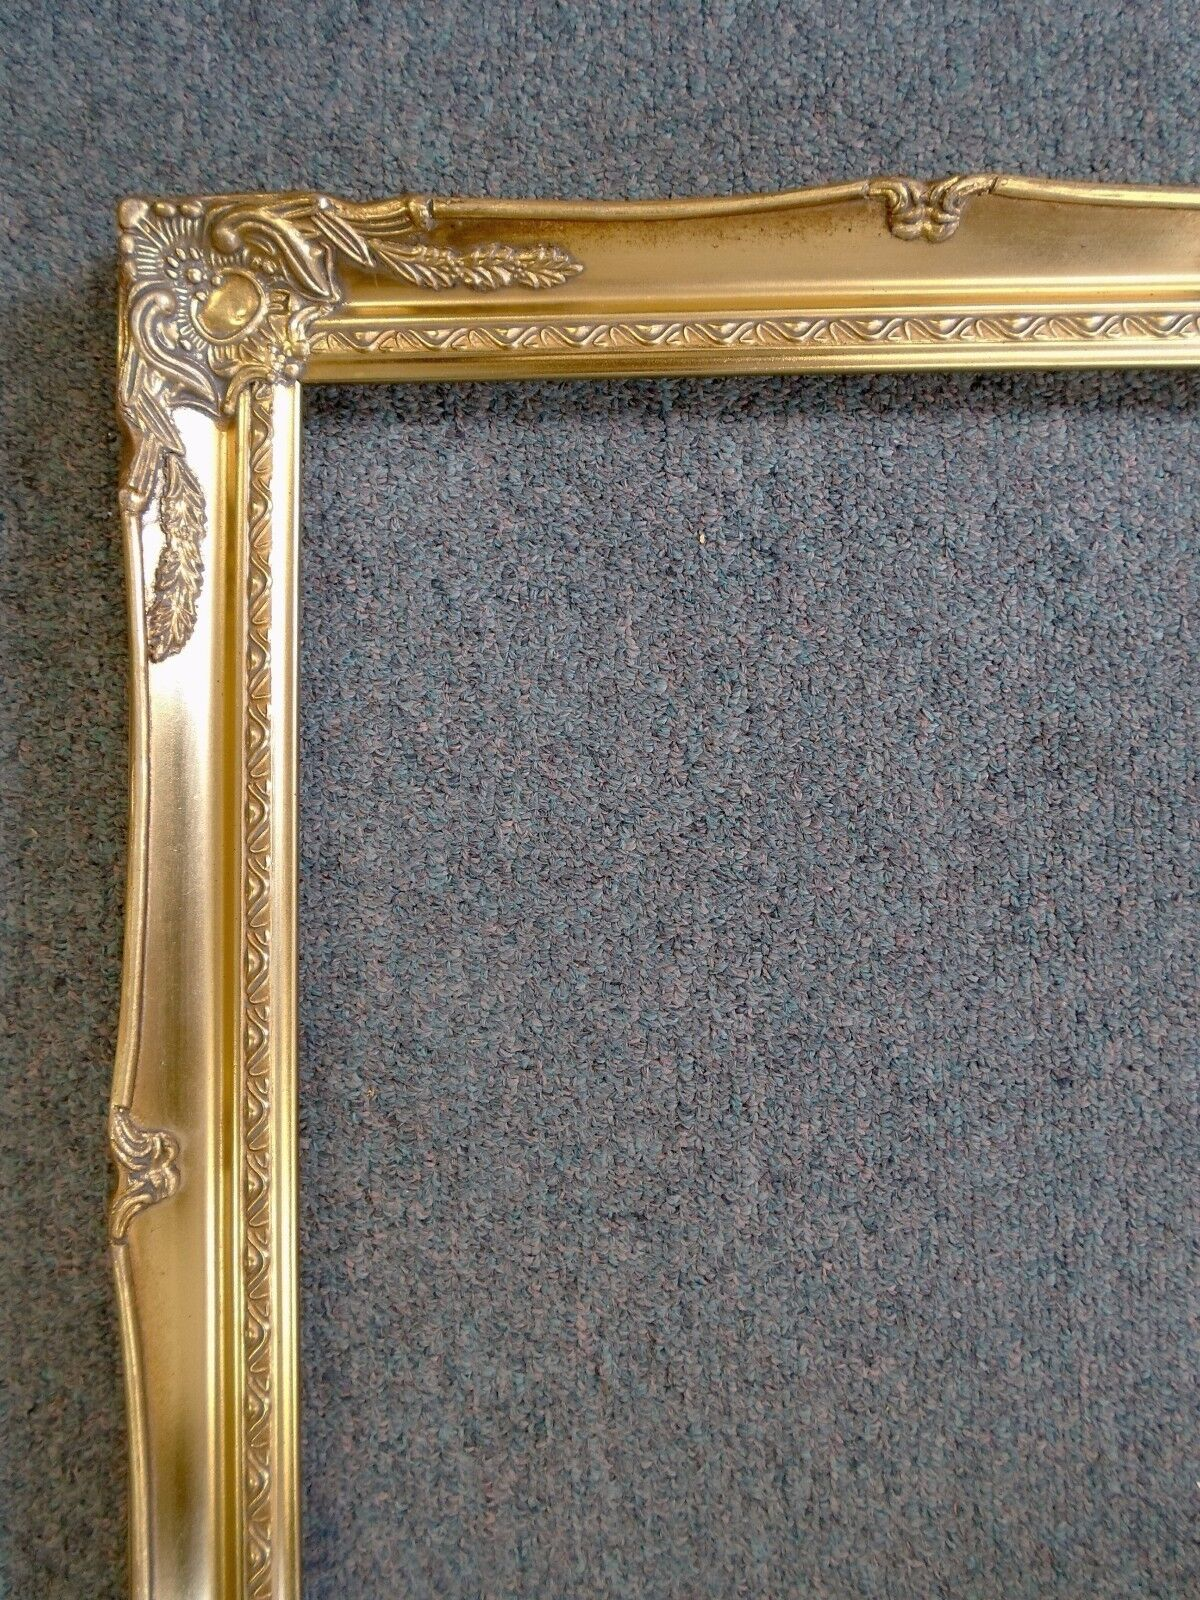 Picture frame 12x16 vintage old gold antique style for Small vintage style picture frames